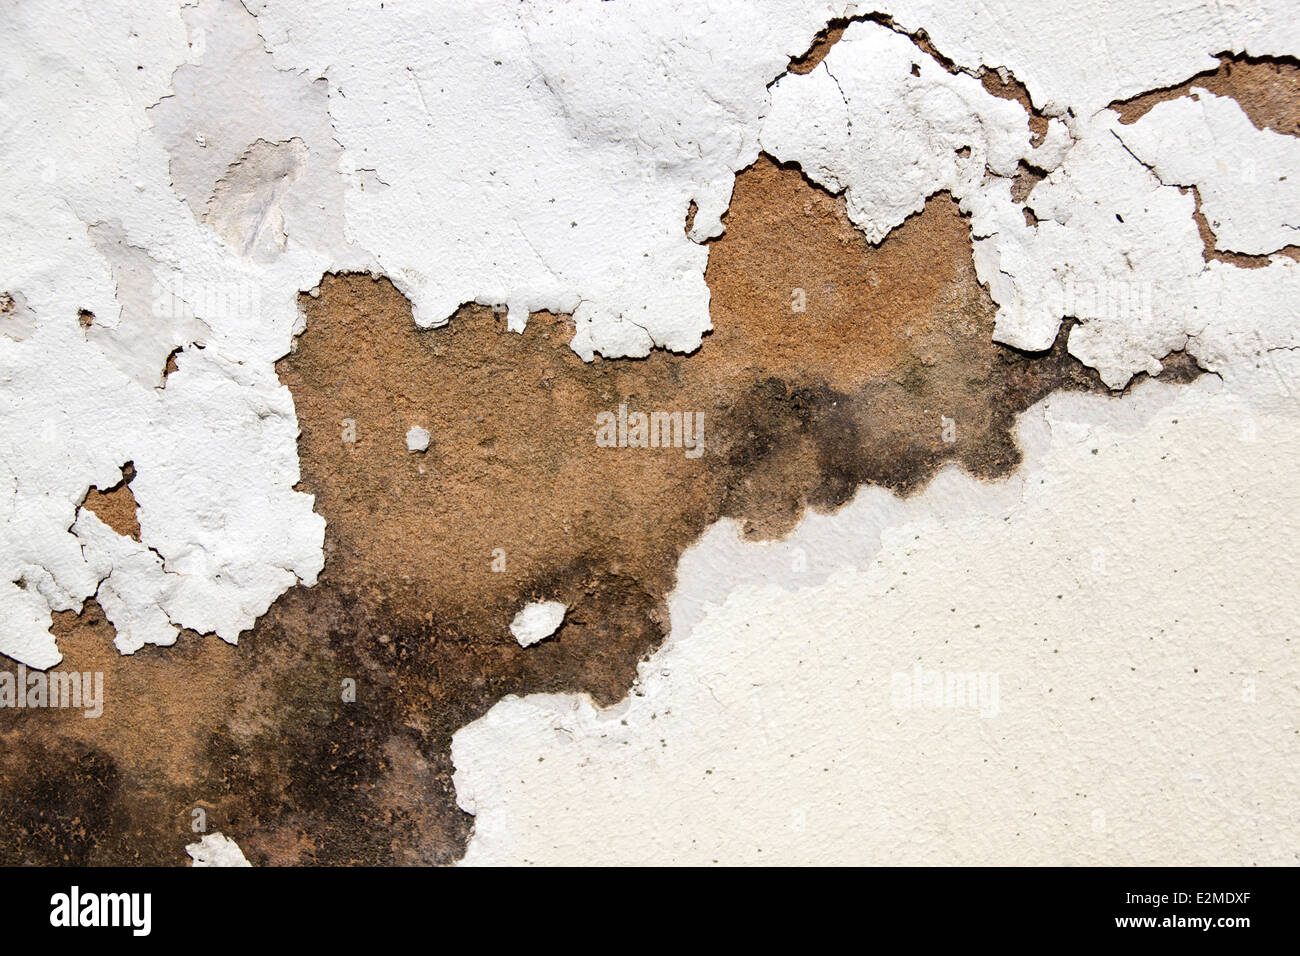 mold on plaster and peeling paint indicating rising damp - Stock Image